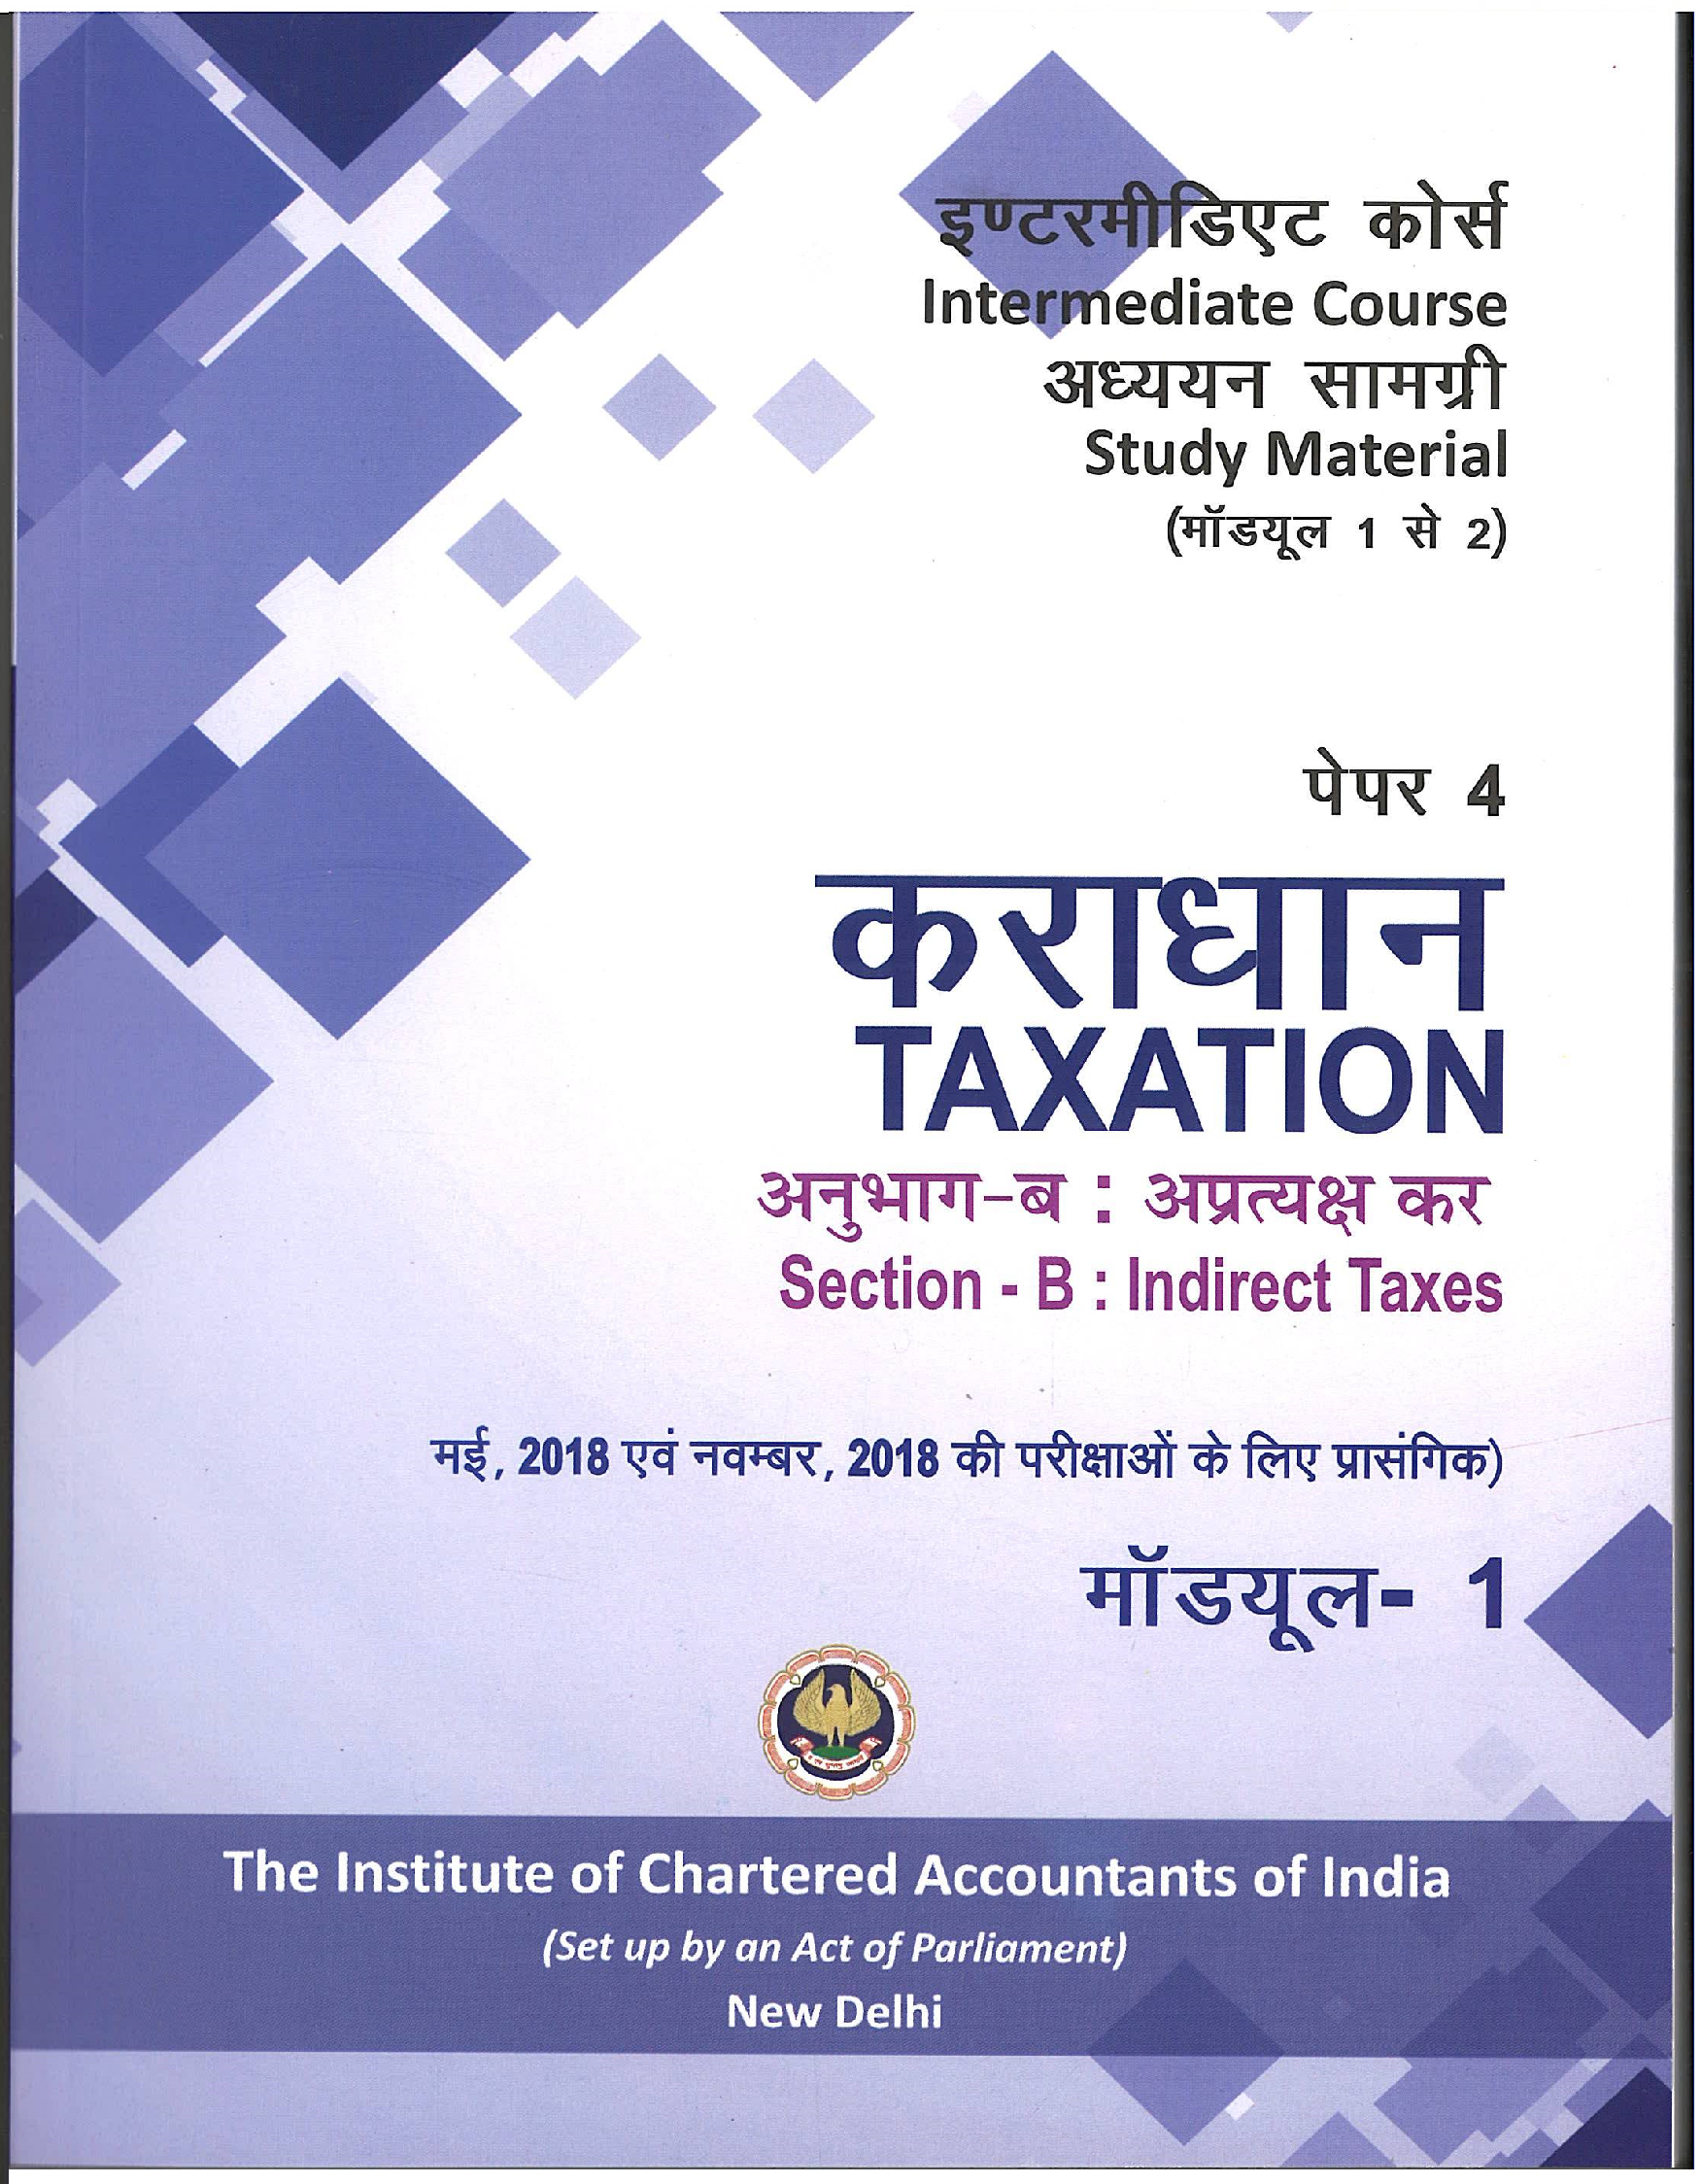 Intermediate Course (Hindi) Study Material  Taxation - Indirect Taxes (Module 1-2) (July, 2017)